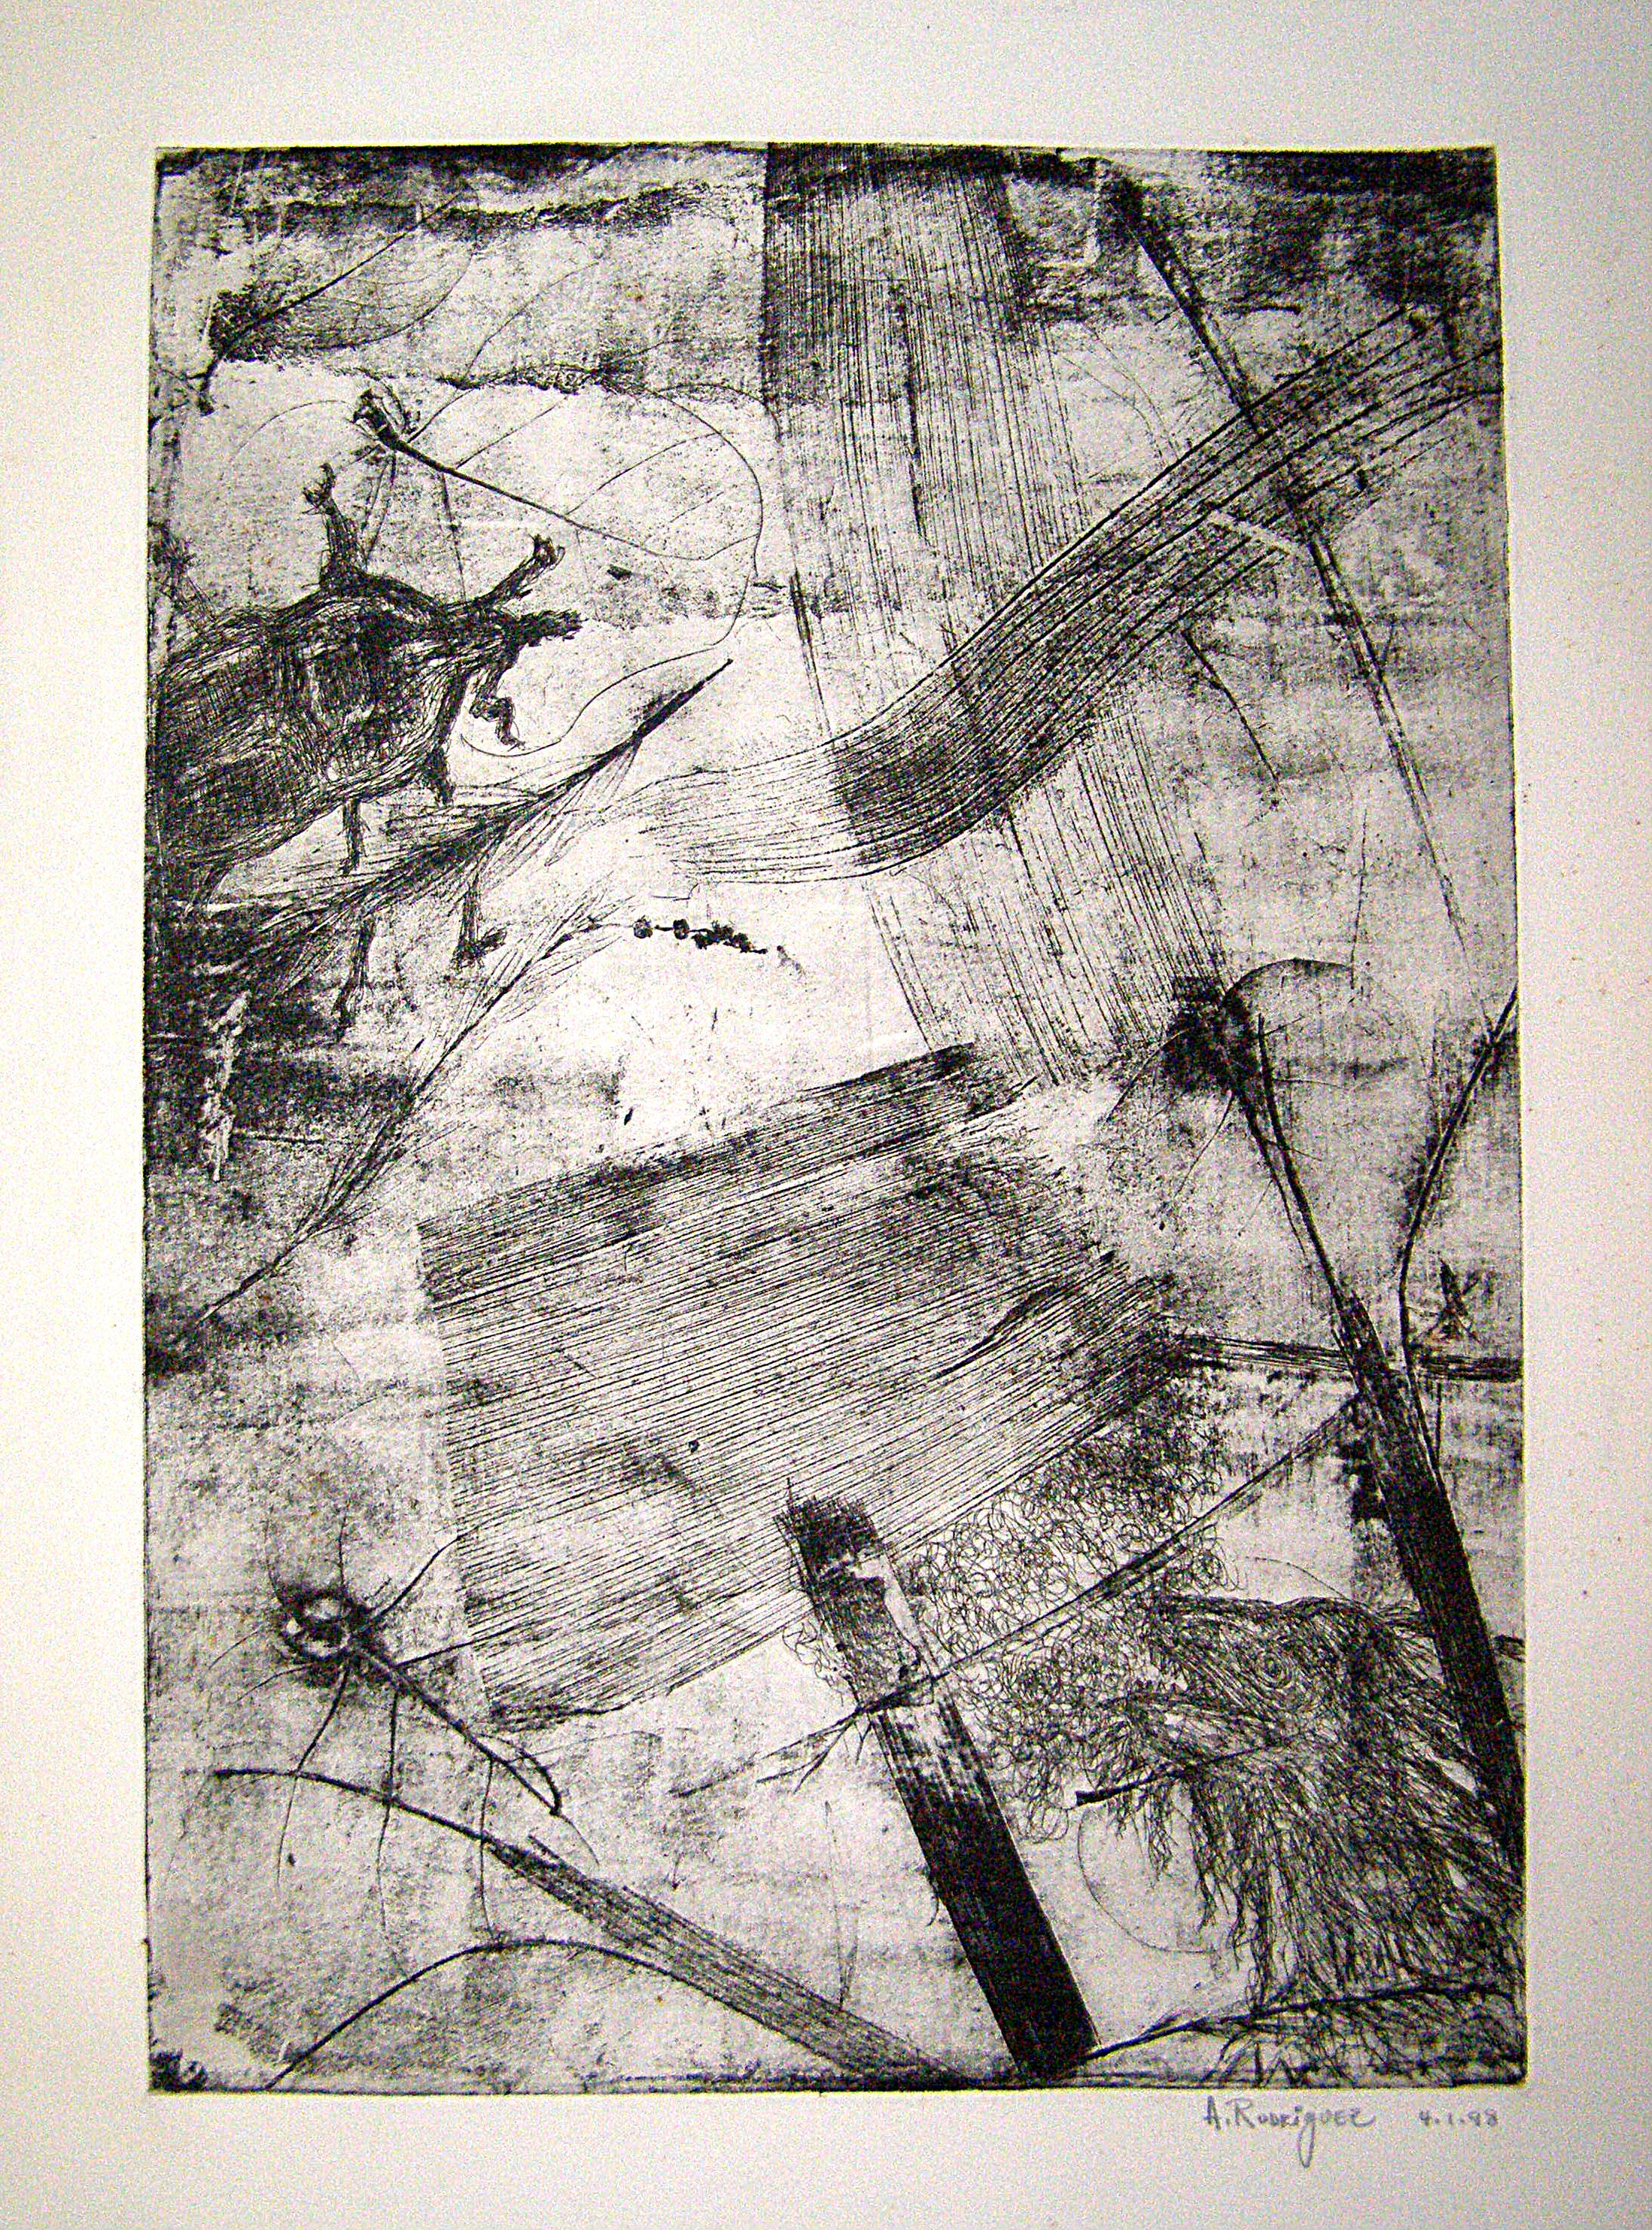 a1.Dragon-Beetle4-1-1998Etching22x30in.2.jpg